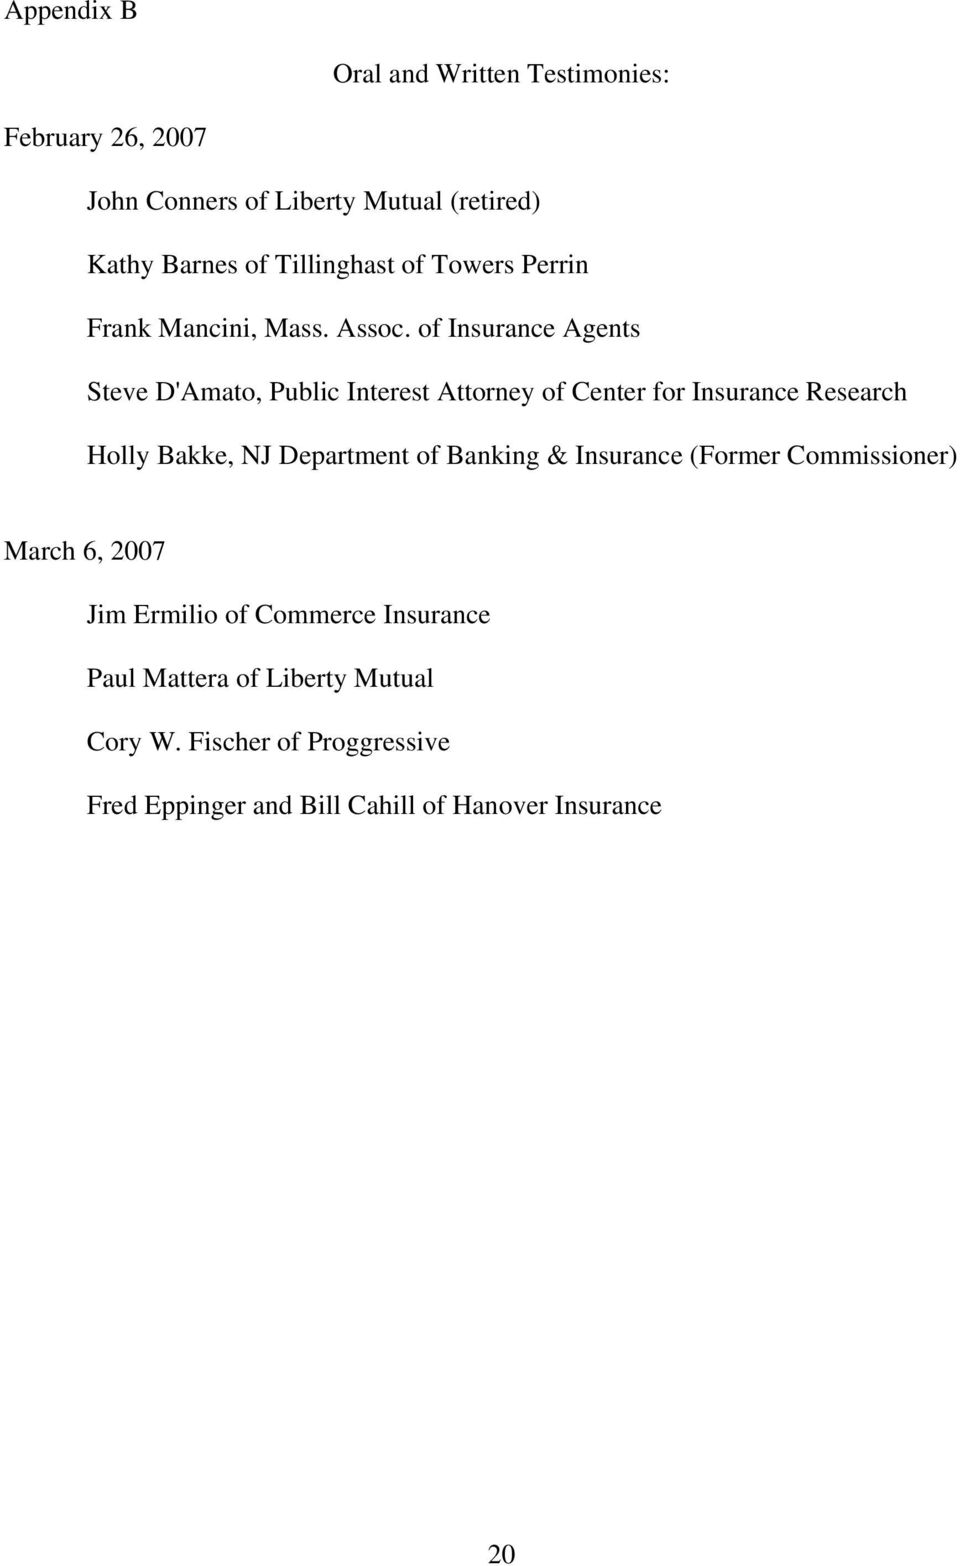 of Insurance Agents Steve D'Amato, Public Interest Attorney of Center for Insurance Research Holly Bakke, NJ Department of